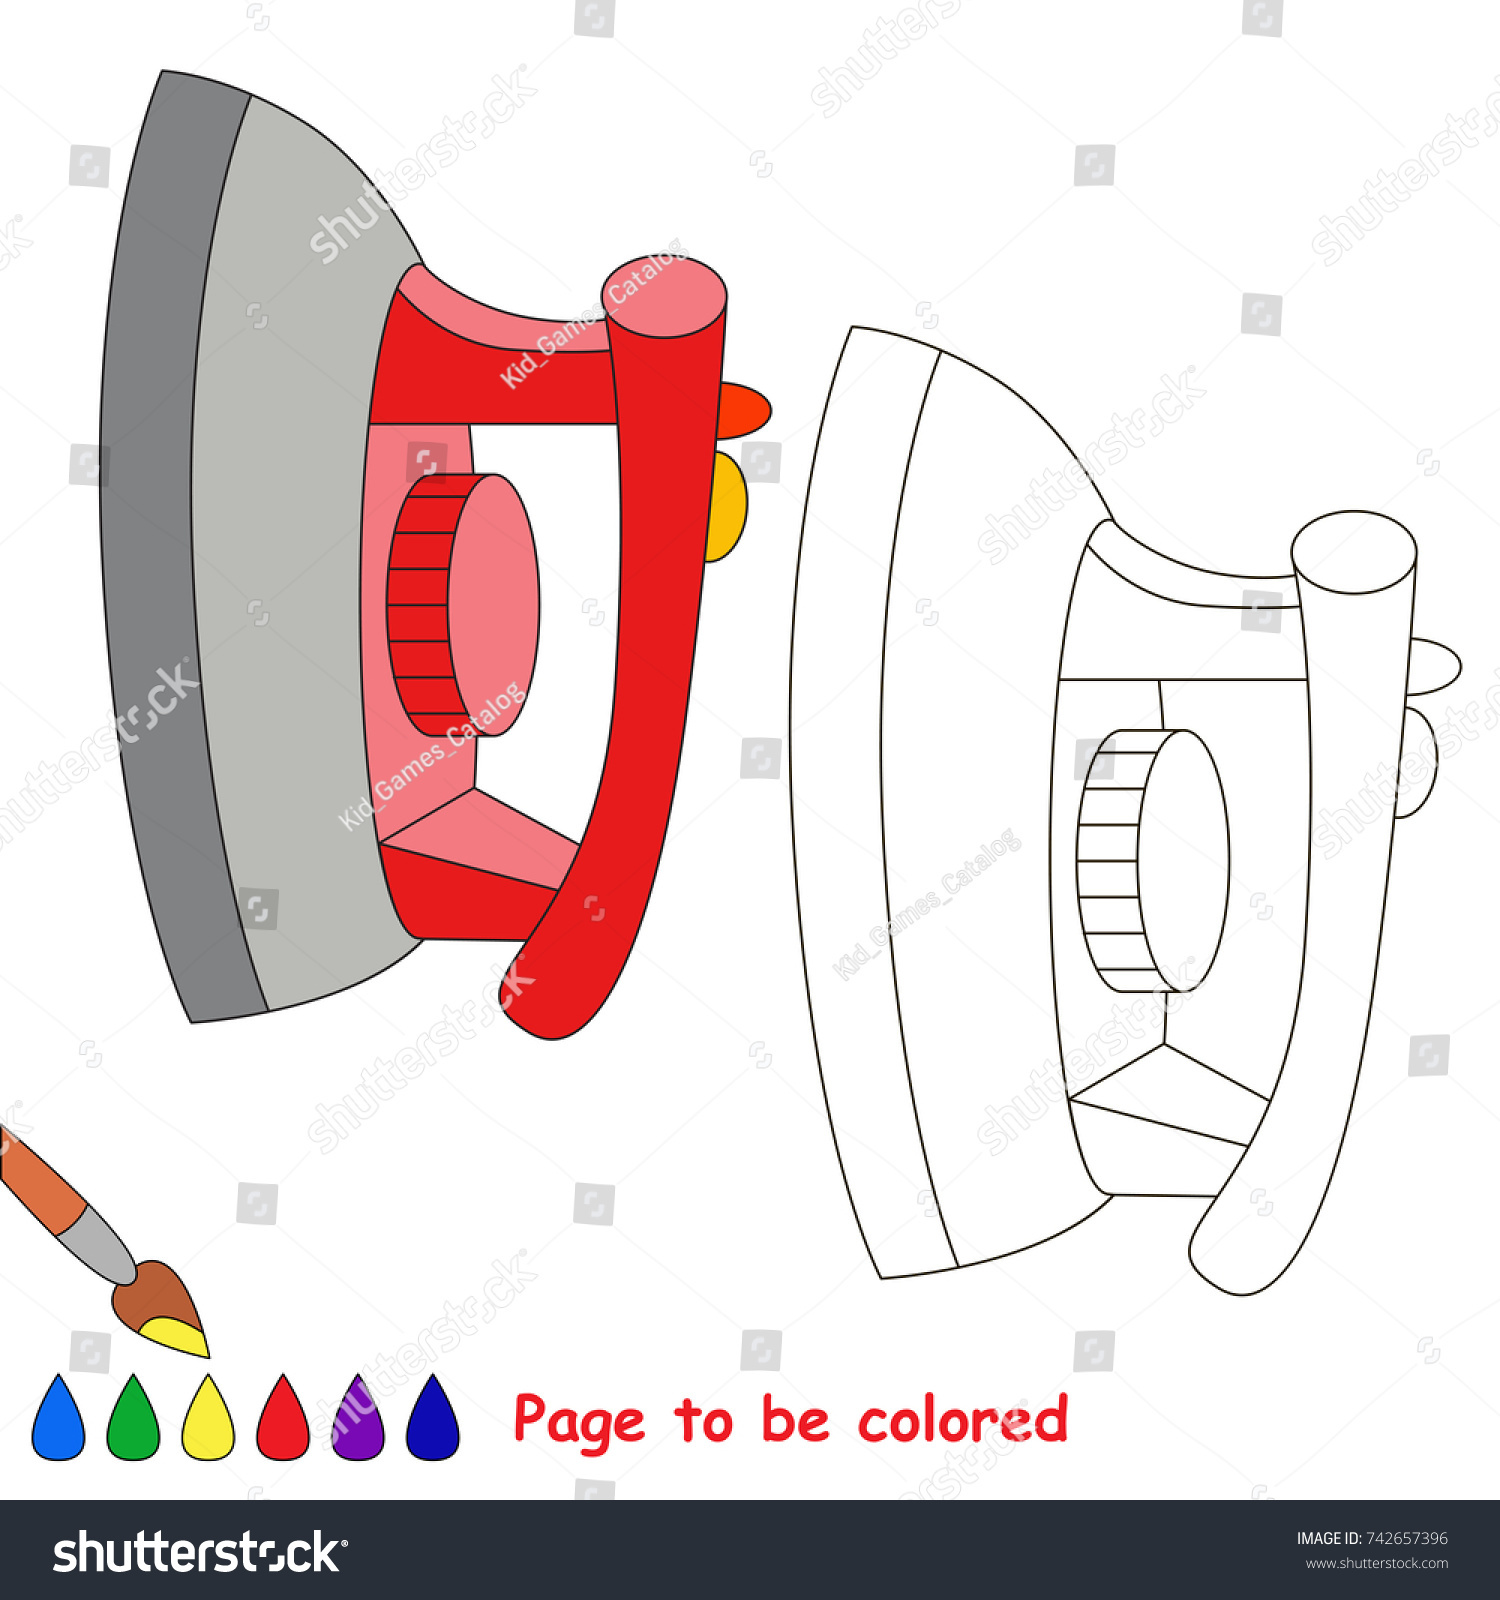 Red Steam Iron Be Colored Coloring Stock Vector 742657396 - Shutterstock